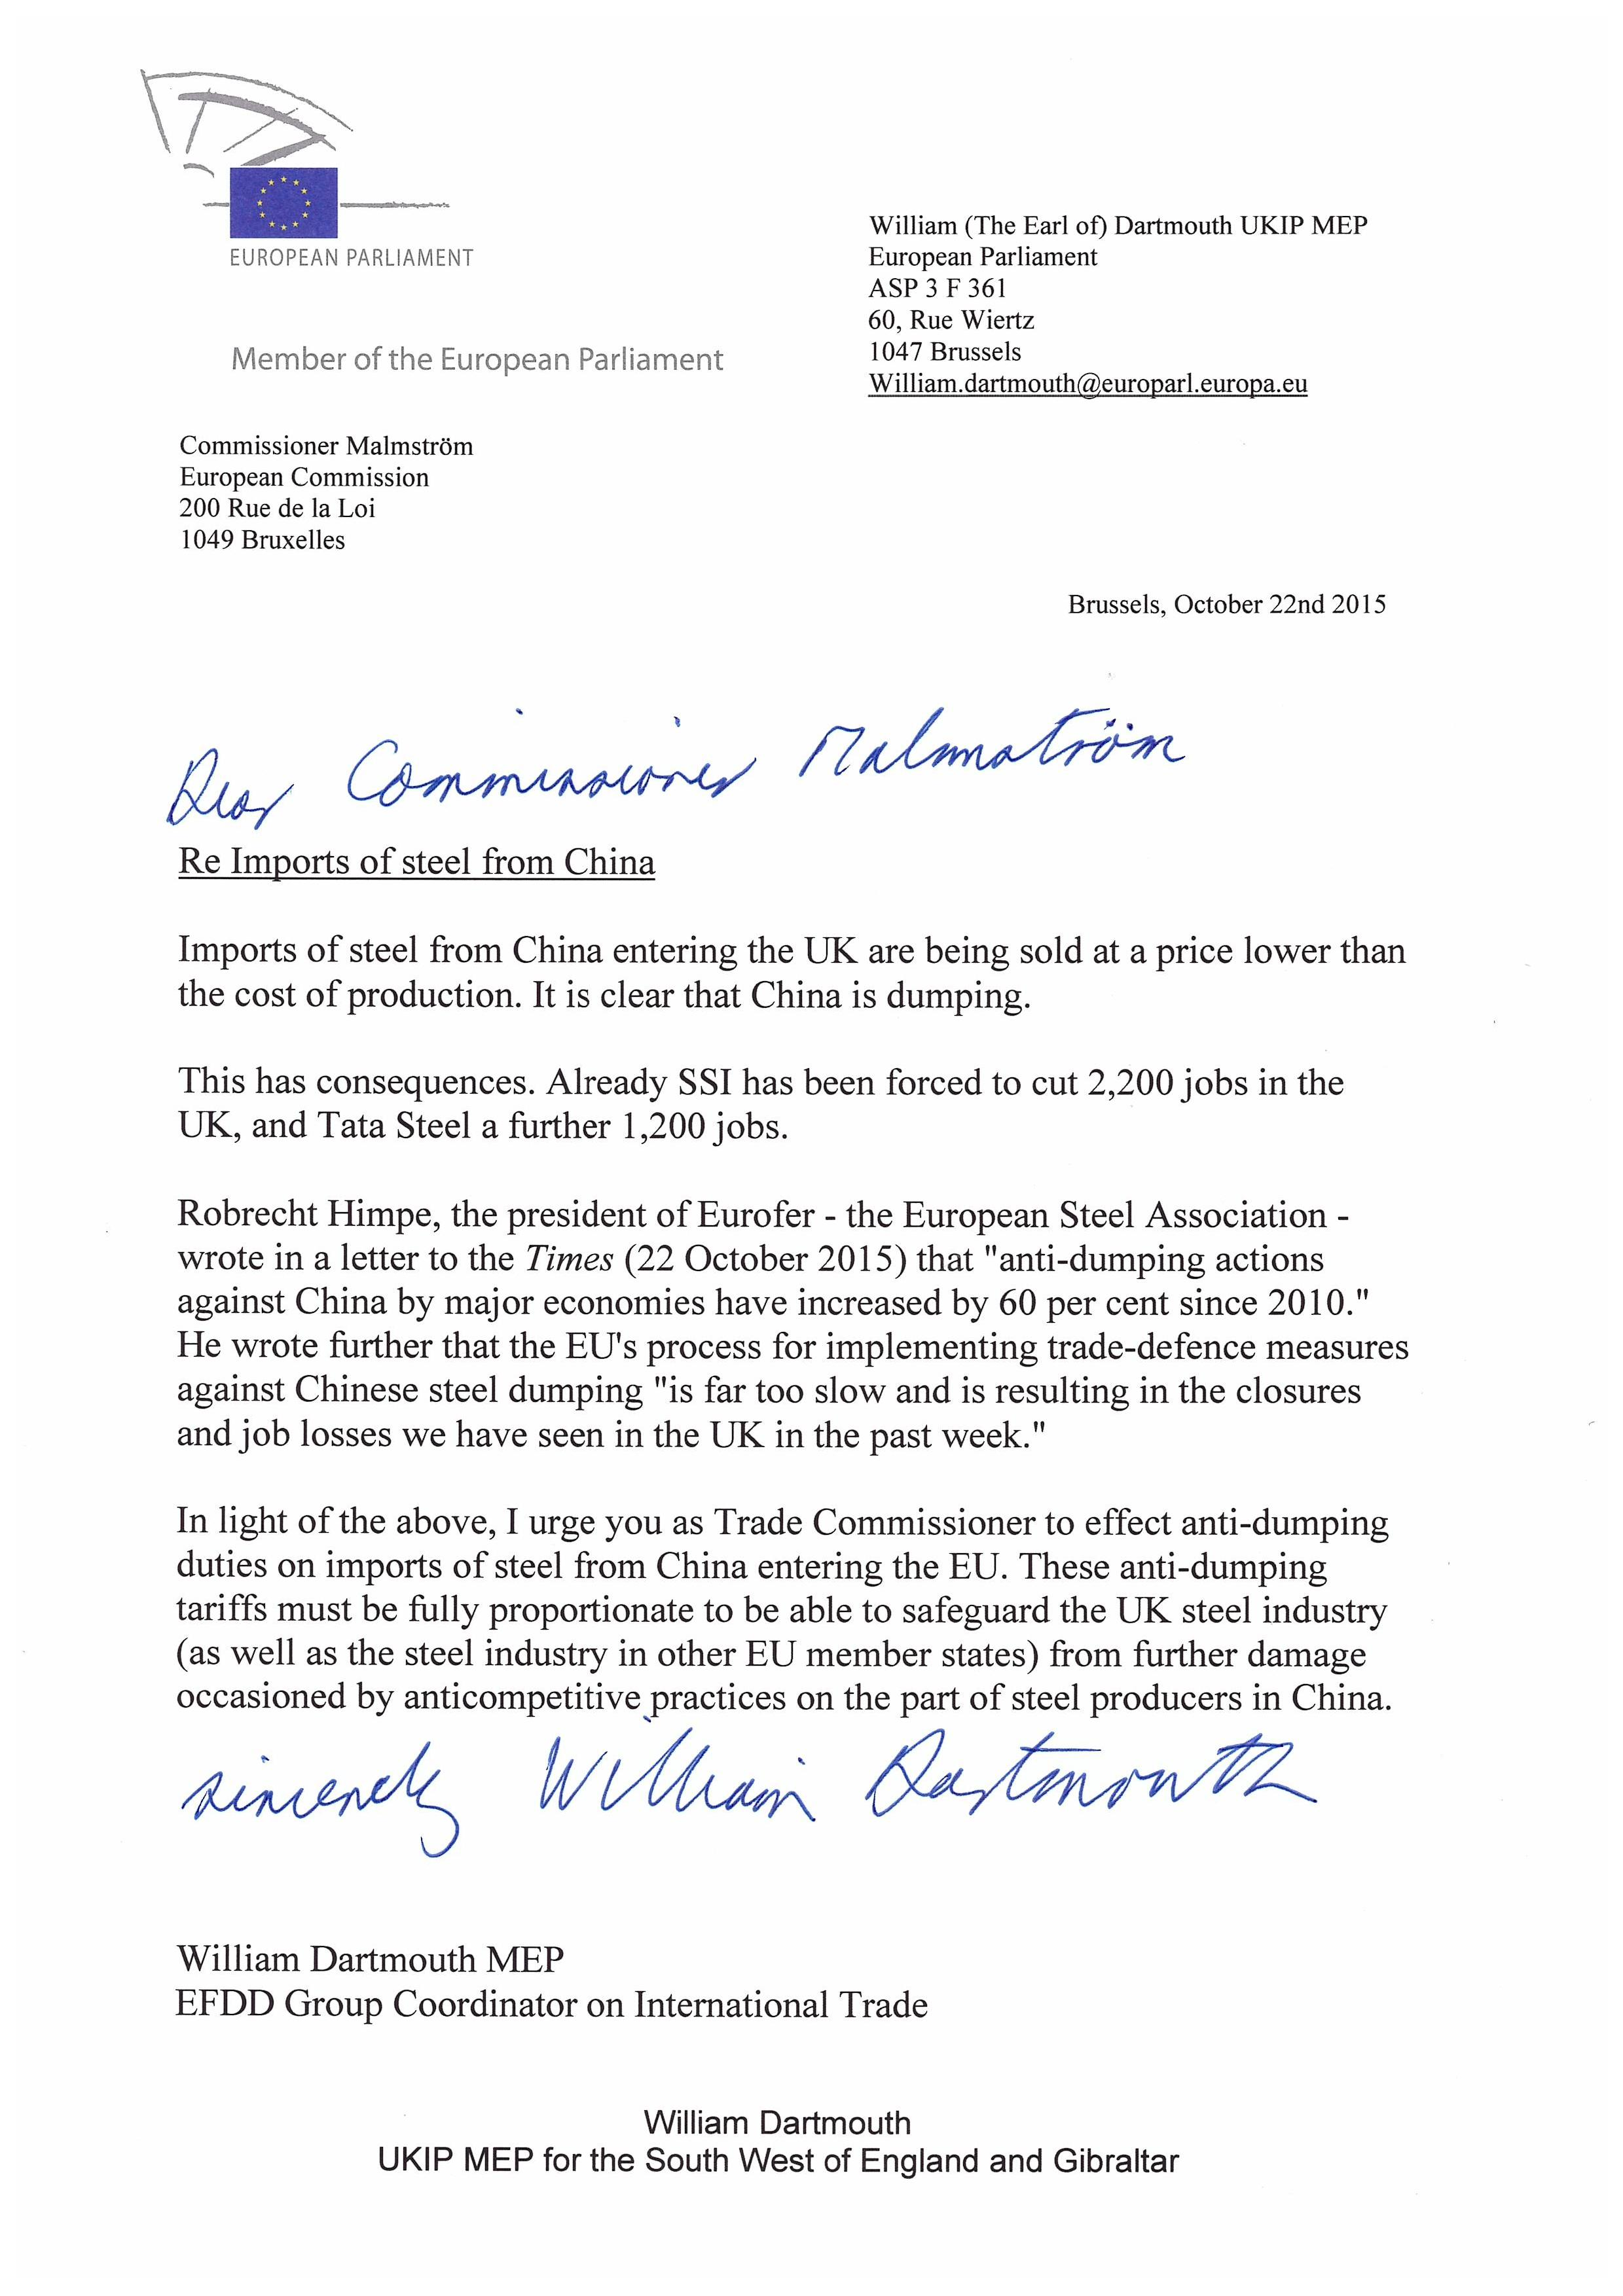 Malmstrom_on_import_of_Chinese_steel_22_10_2015_(2)-page-001.jpg